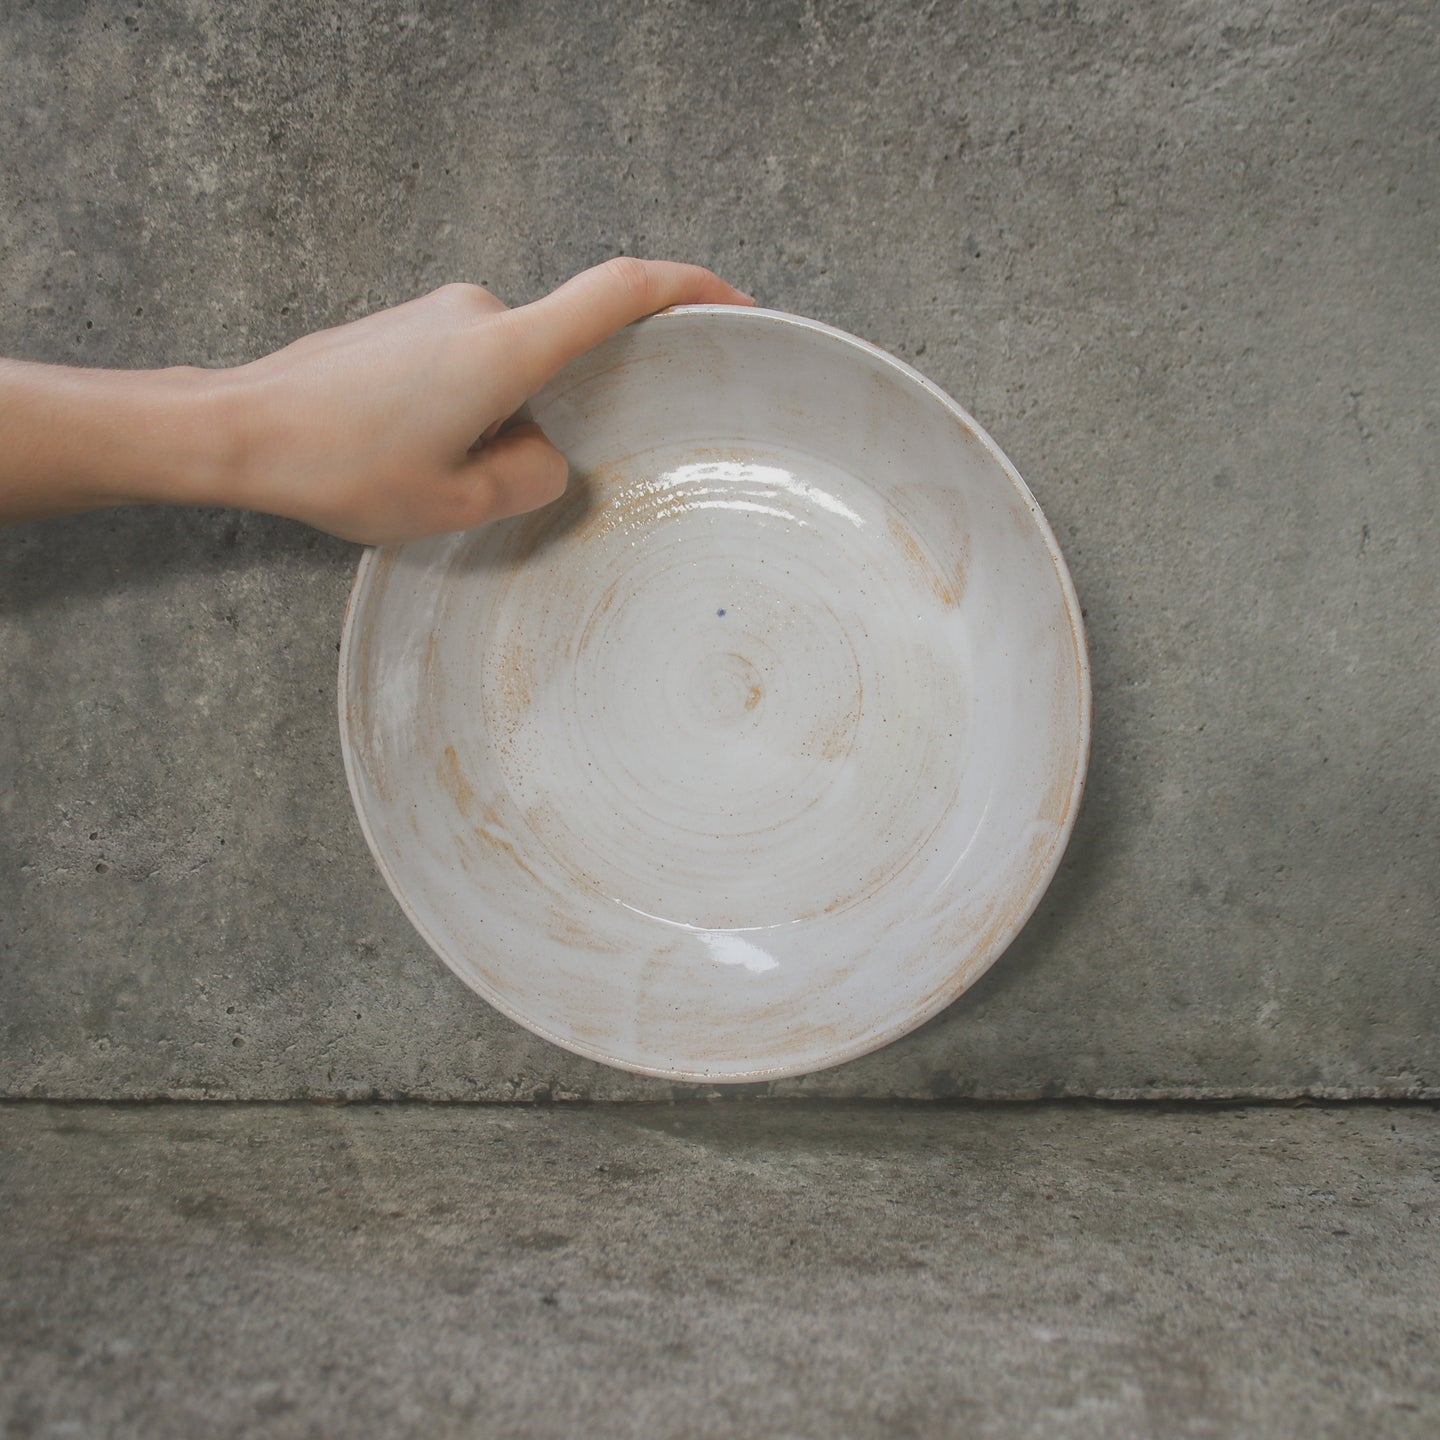 A handmade ceramic serving bowl being held up by a single hand against a concrete wall. Made from buff Australian stoneware clay with a white and subtle orange glaze.